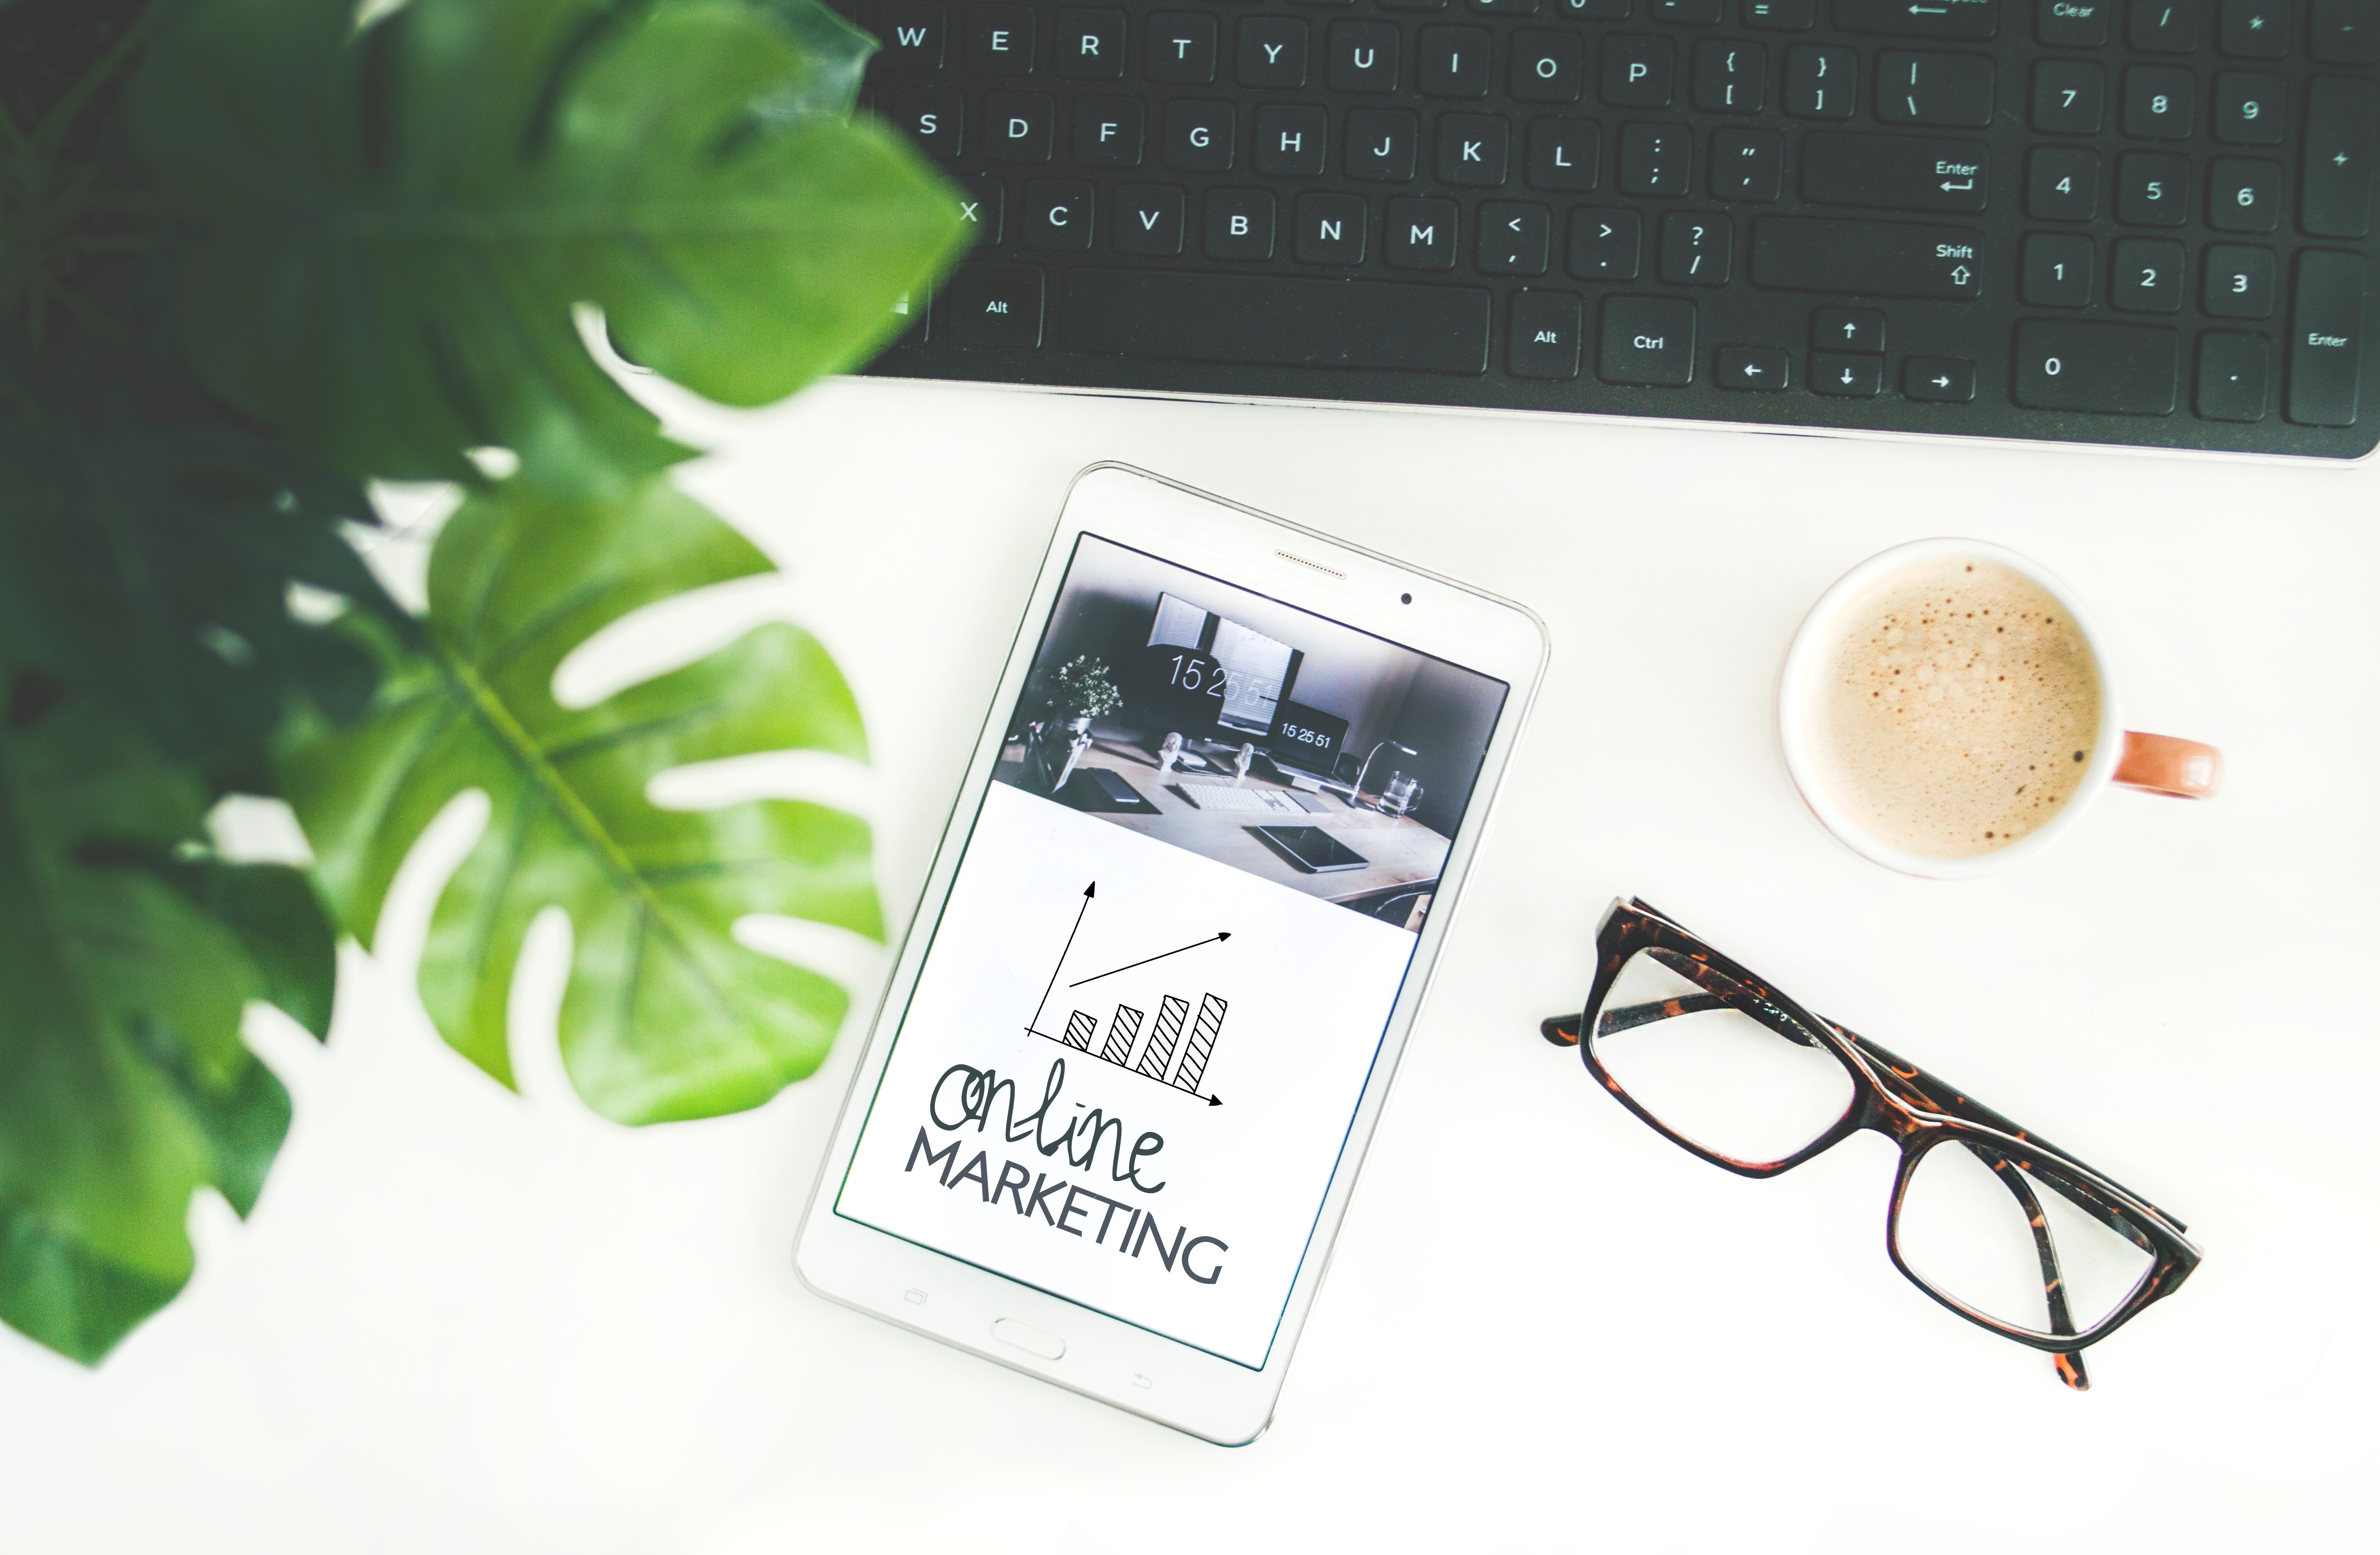 3 Simple Marketing Tips for Non-Marketers